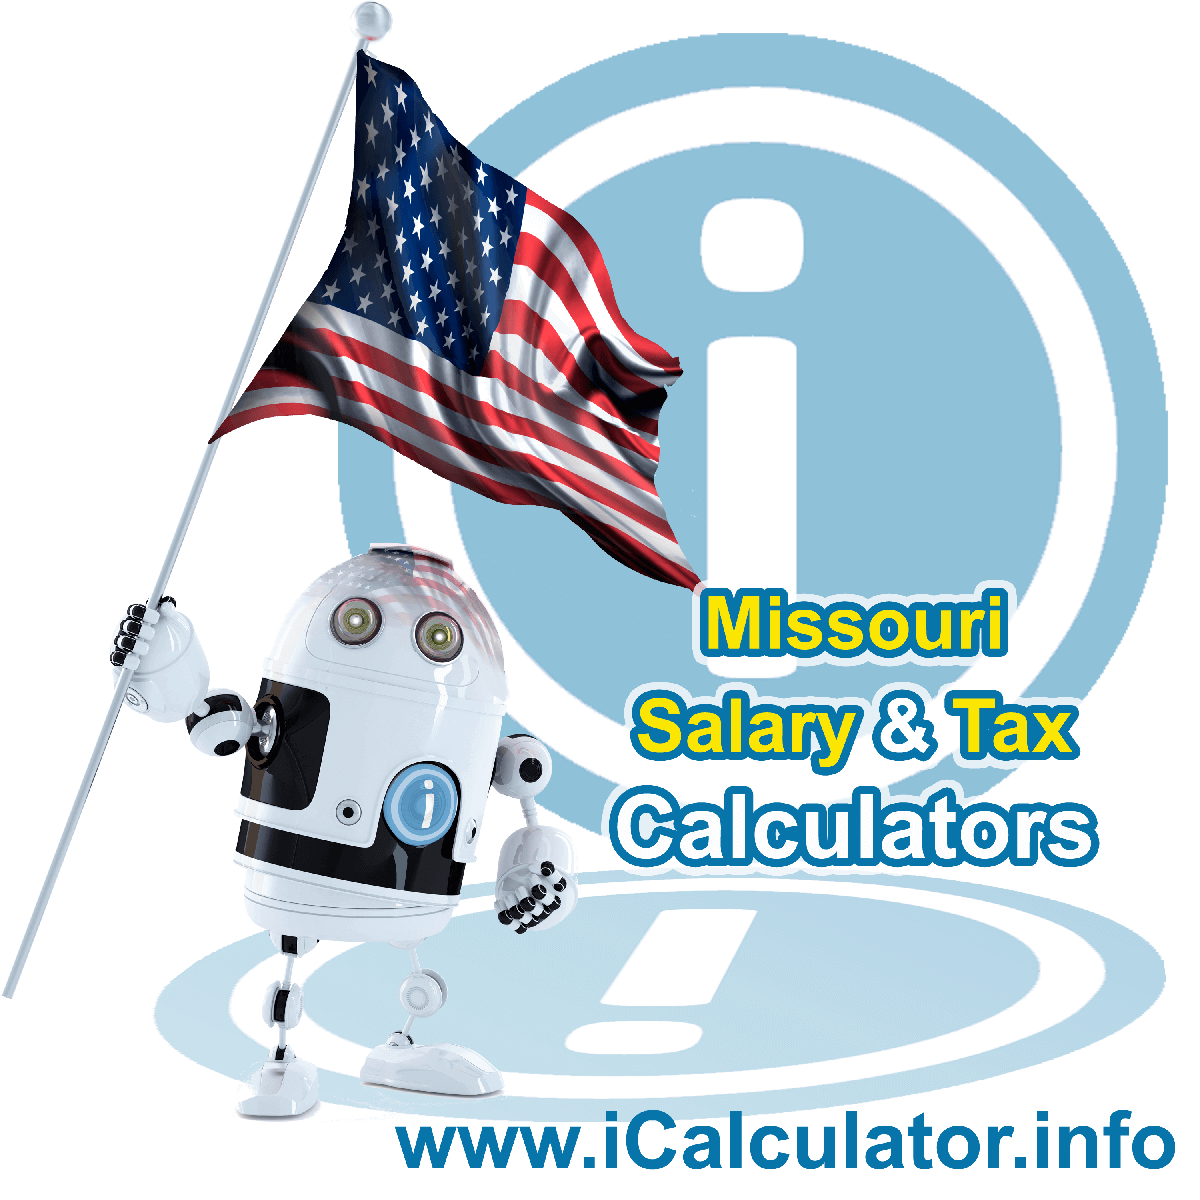 Missouri Salary Calculator 2019 | iCalculator | The Missouri Salary Calculator allows you to quickly calculate your salary after tax including Missouri State Tax, Federal State Tax, Medicare Deductions, Social Security, Capital Gains and other income tax and salary deductions complete with supporting Missouri state tax tables